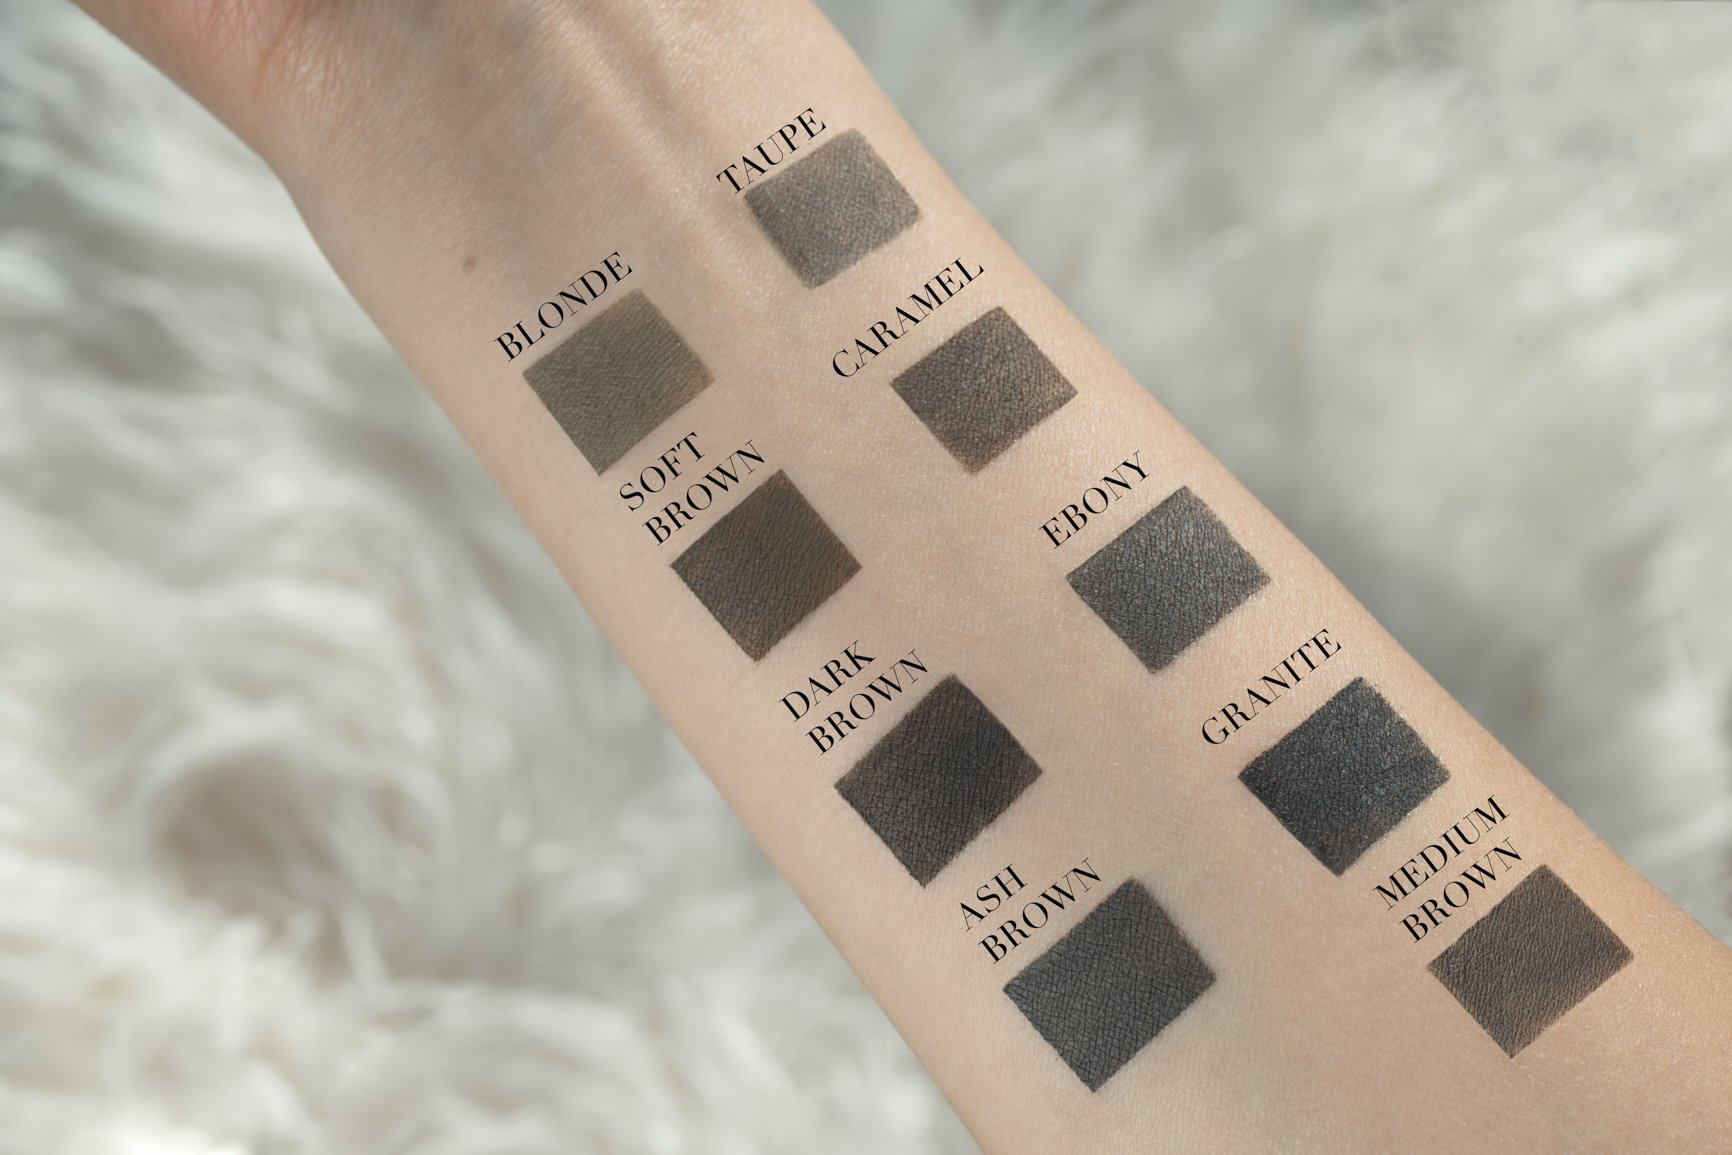 Anastasia Beverly Hills DipBrow Pomade Waterproof Brow Color swatches of shades